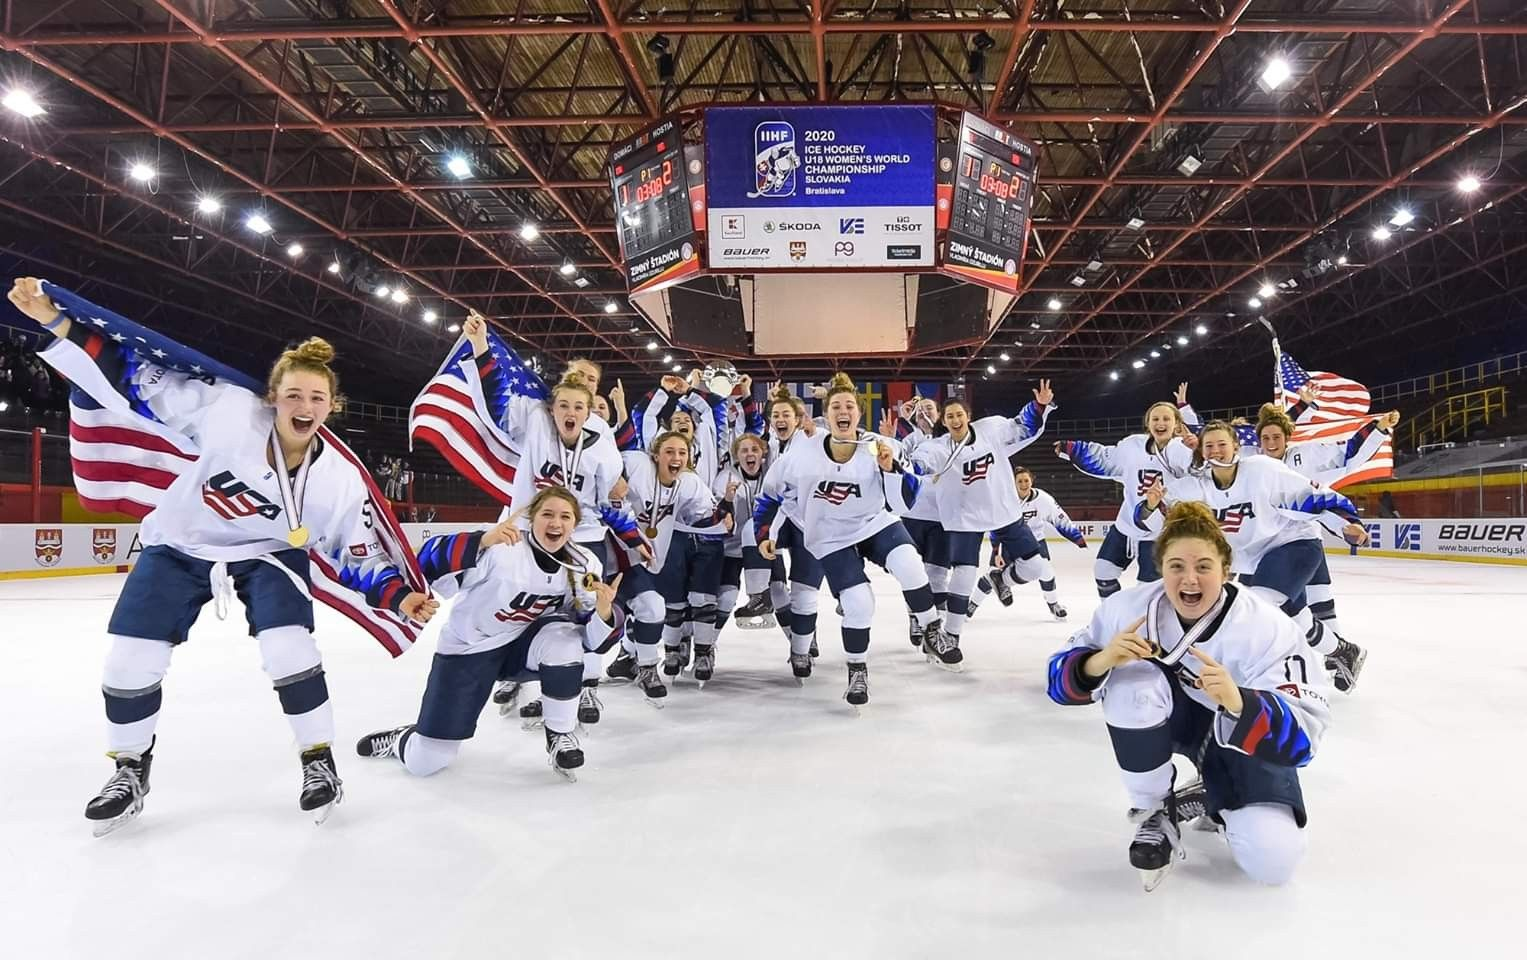 Pin by Airi Pung on Tackla Sport. Hockey. in 2020 Team